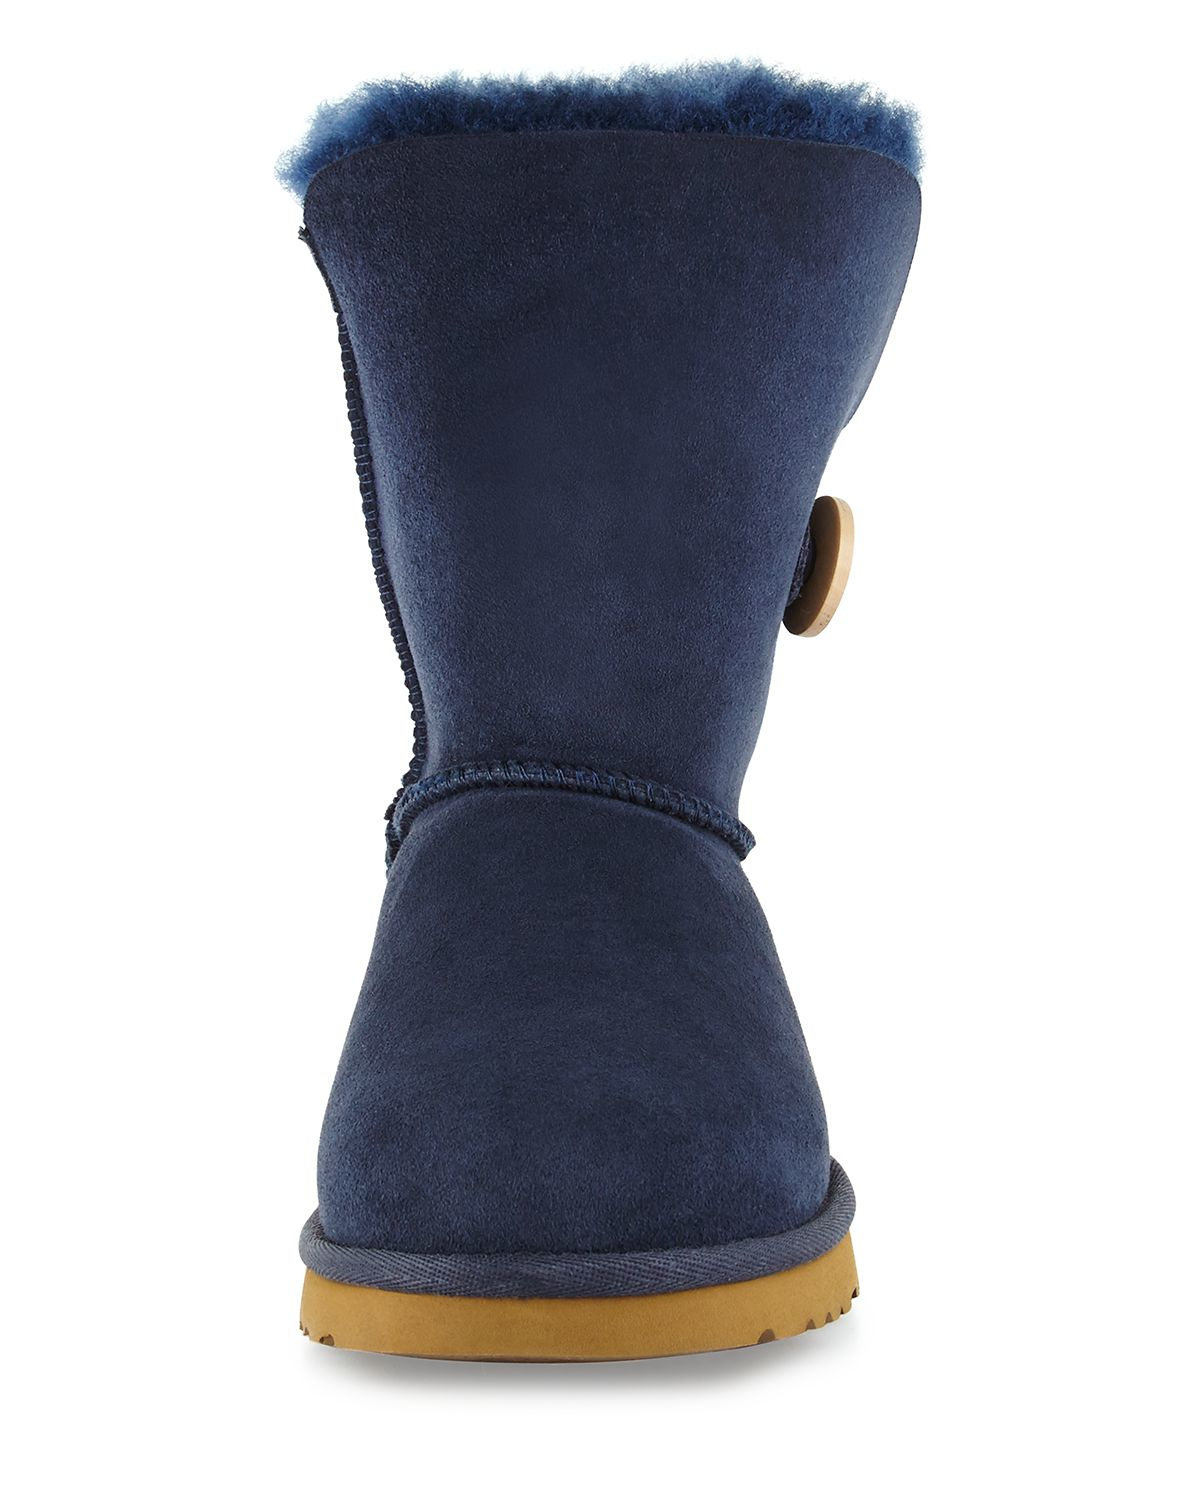 ugg bailey button navy blue